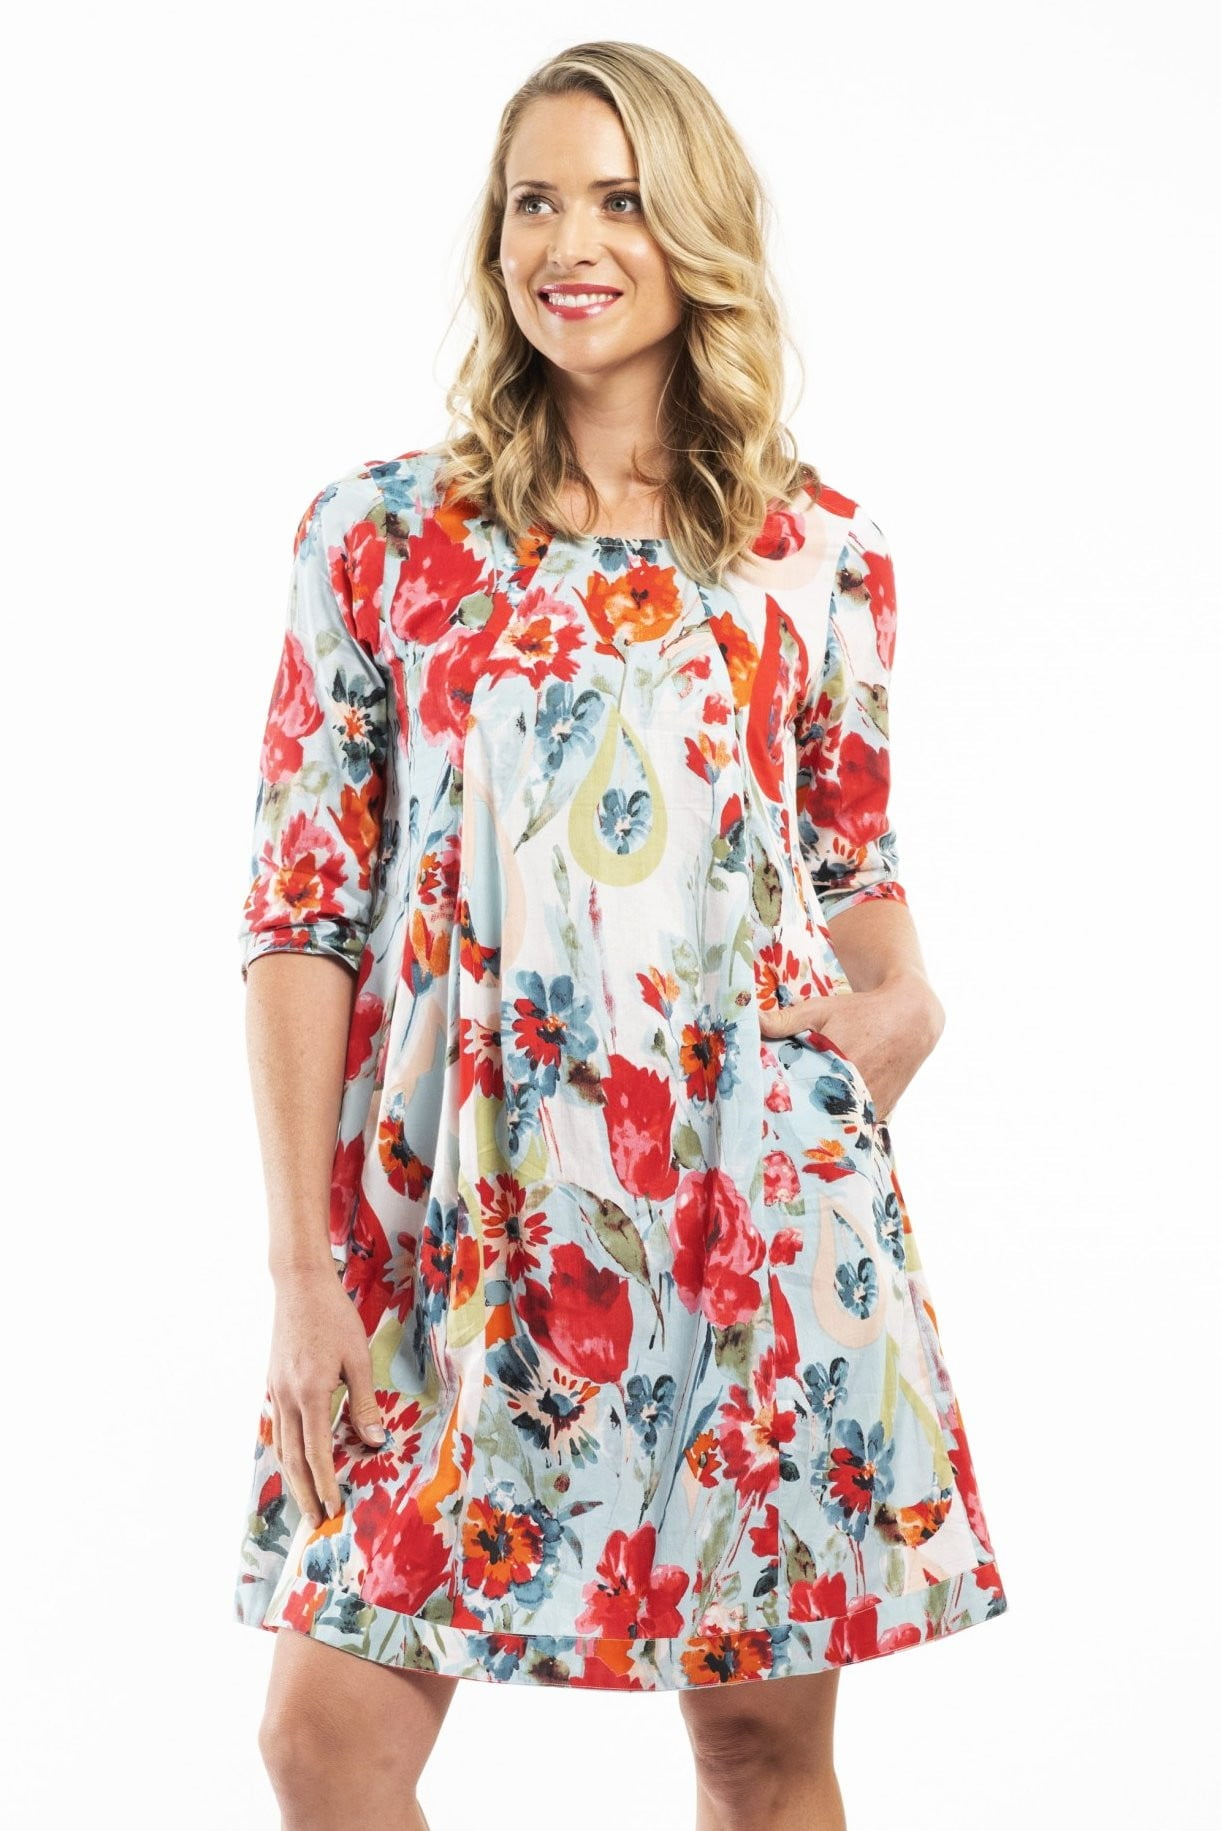 Orientique Kefalonia Tunic Dress | I Love Tunics | Tunic Tops | Tunic | Tunic Dresses  | womens clothing online